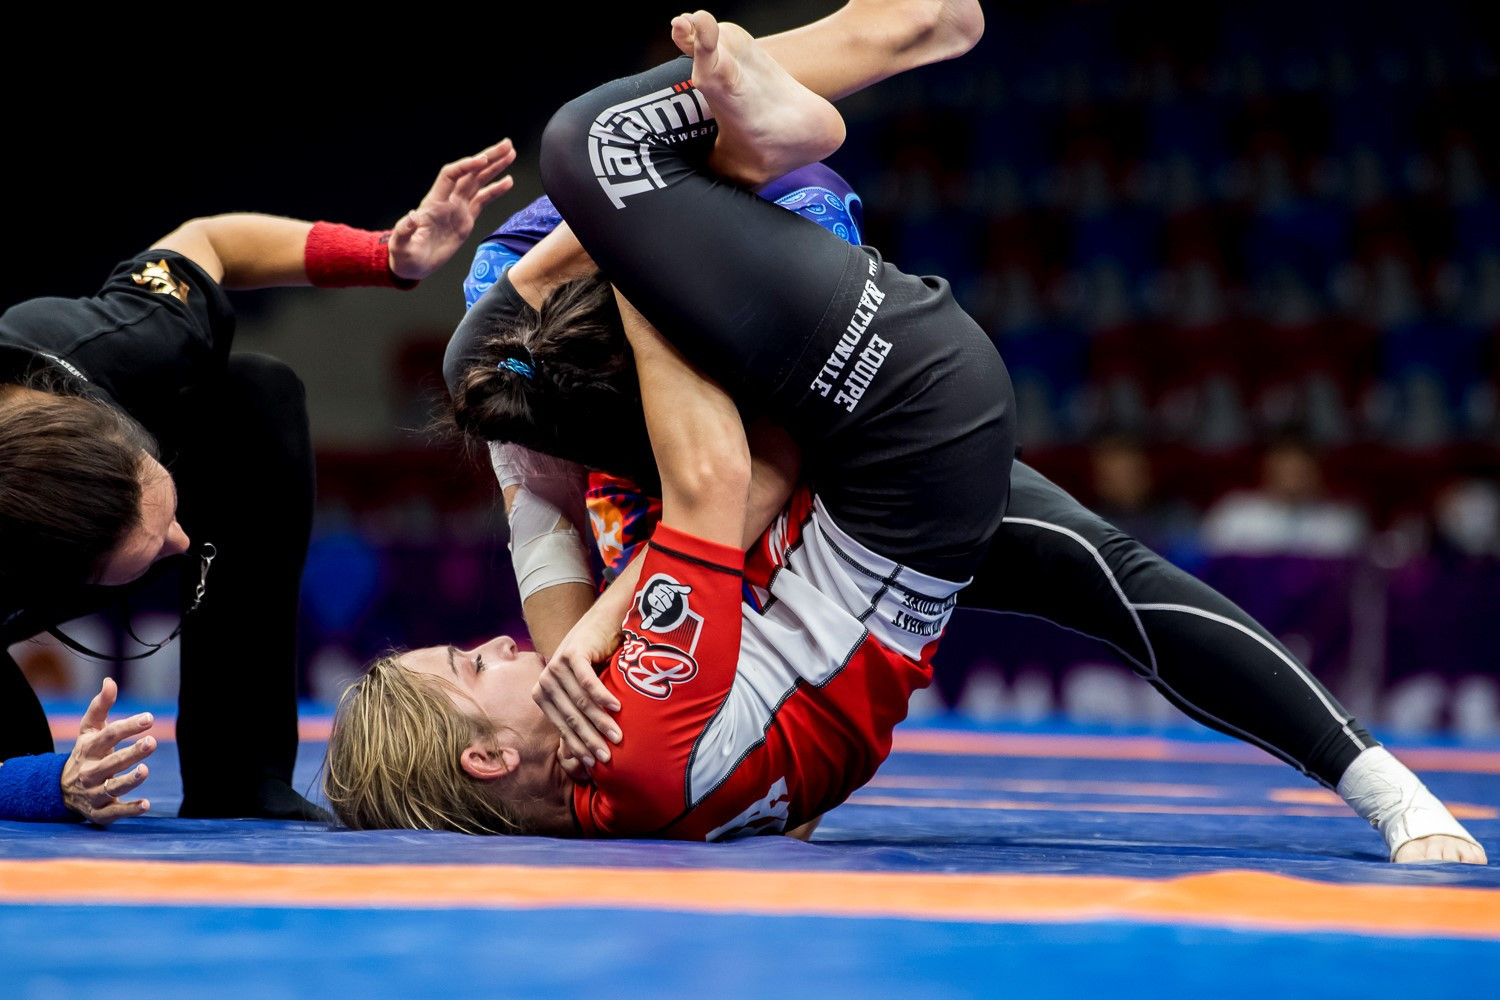 Grappling isn't an Olympic sport but is overseen by the UWW's Grappling Commission ©UWW